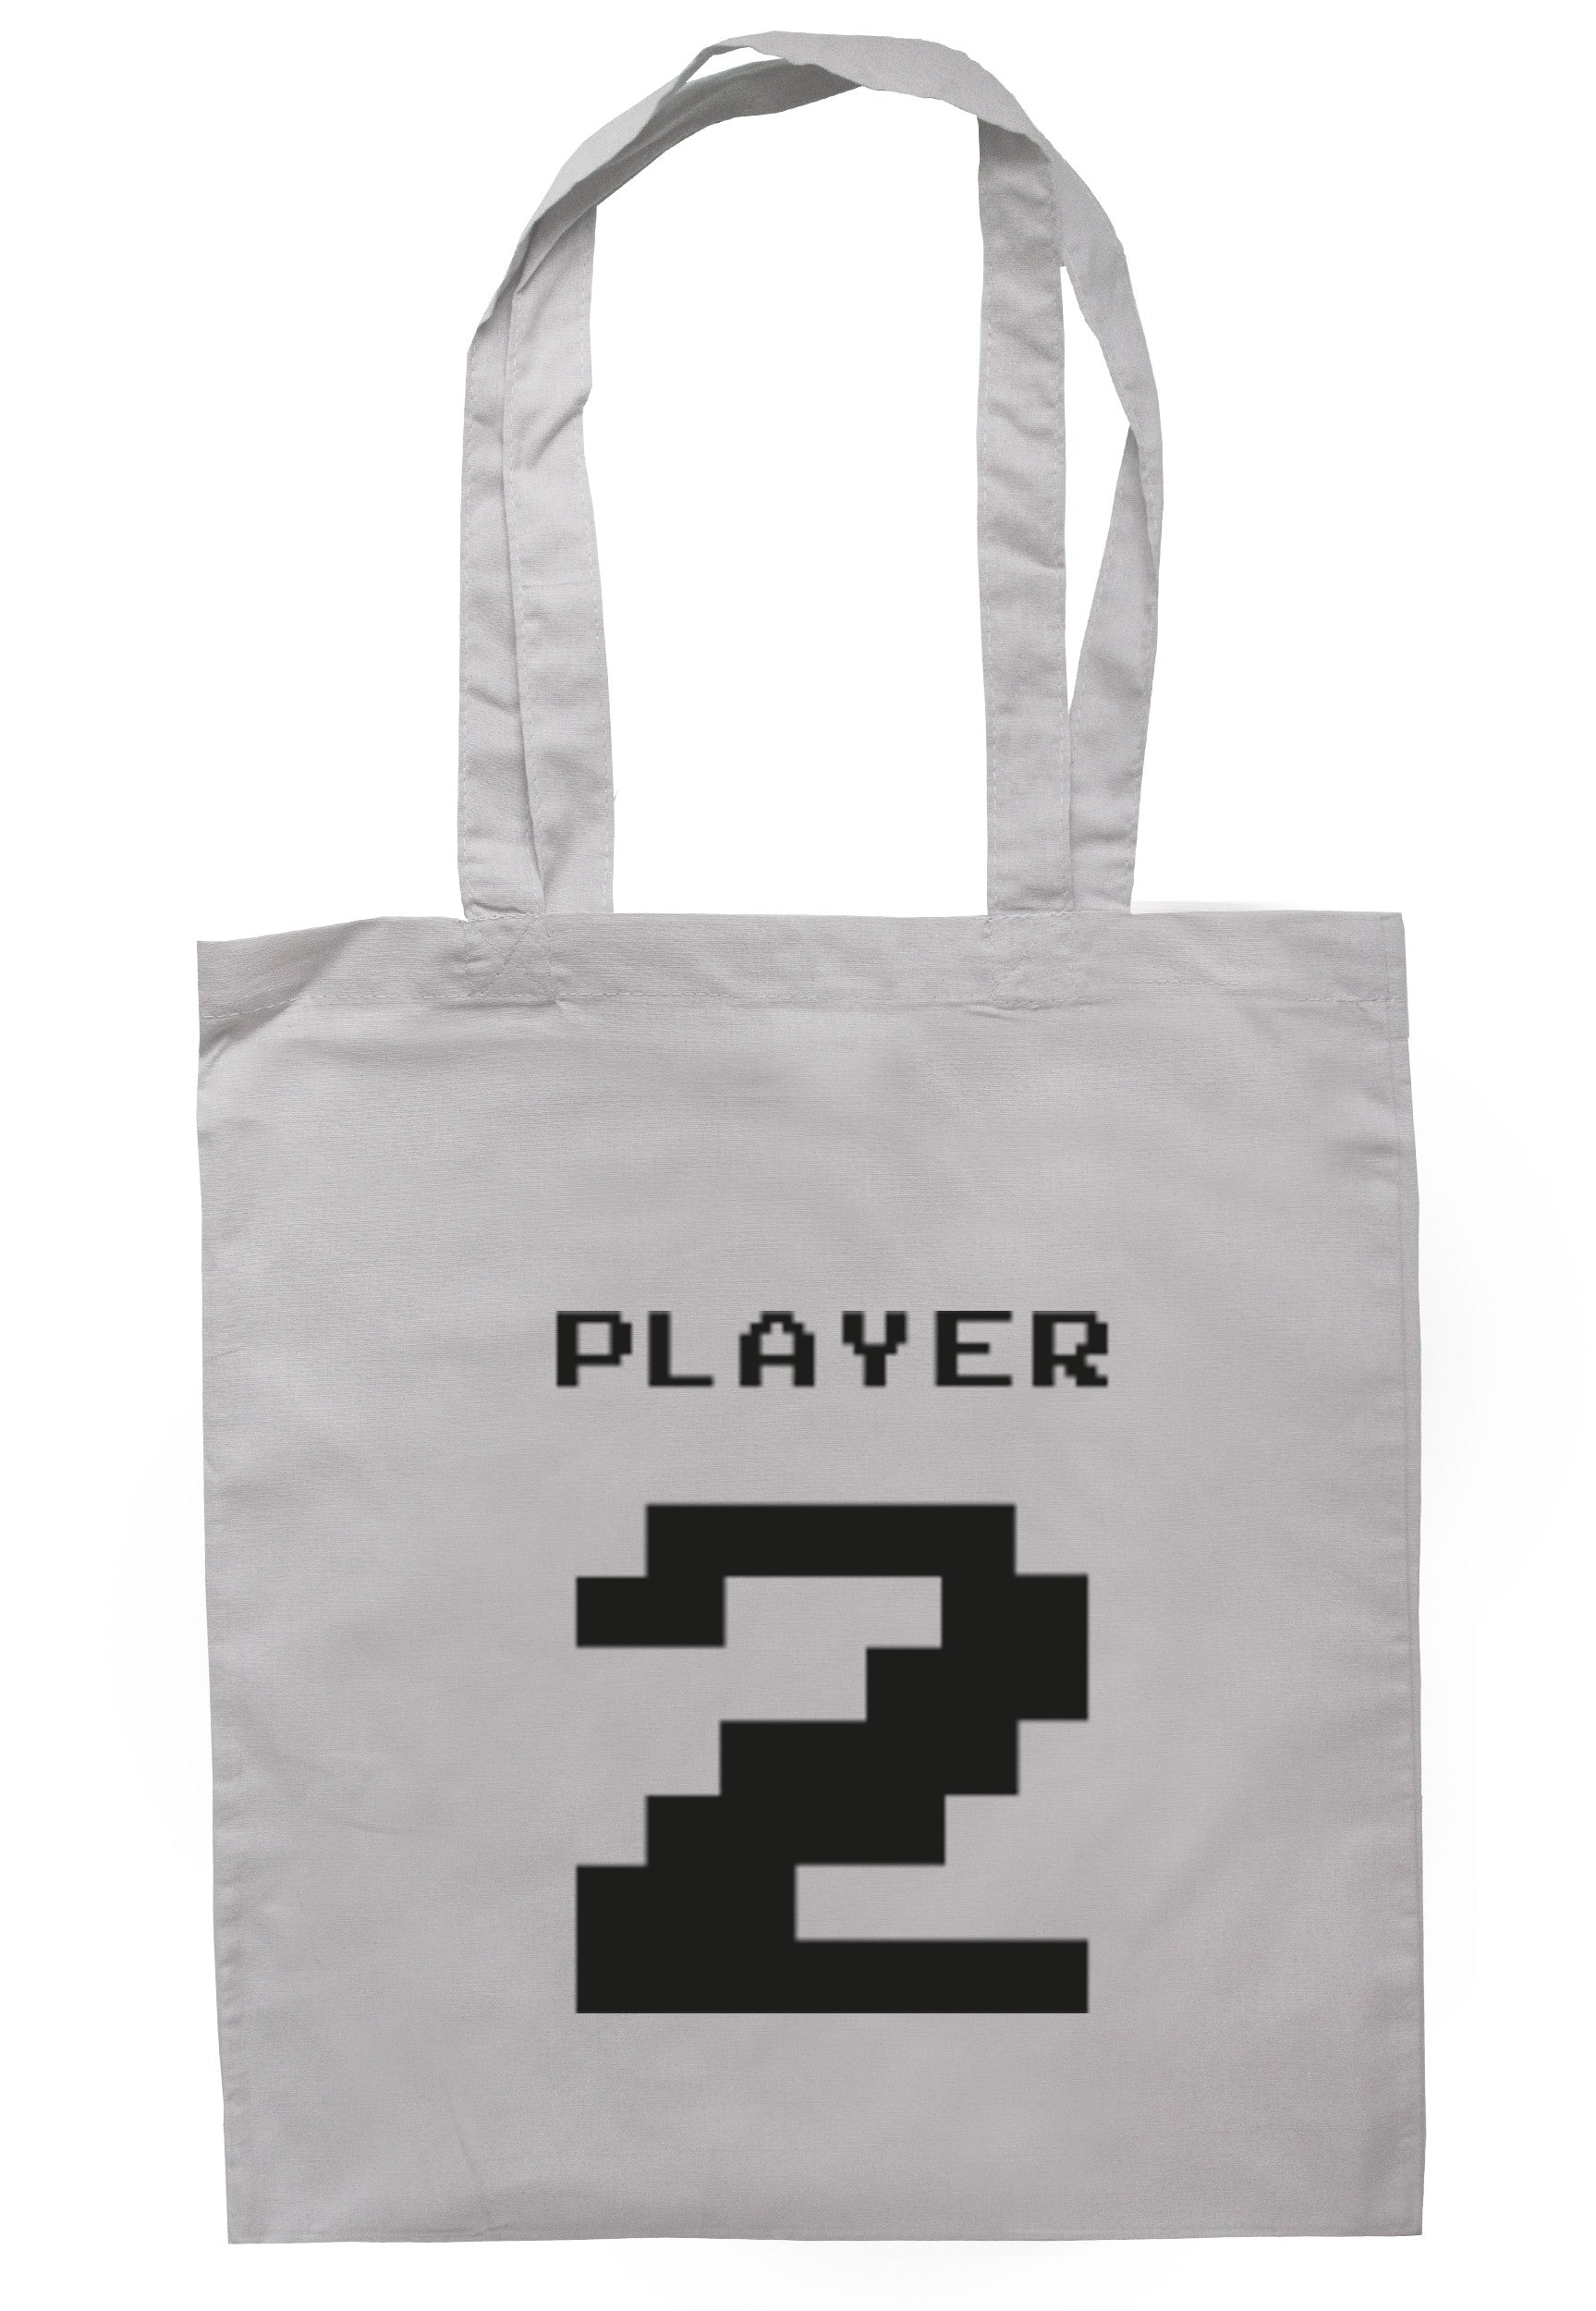 Player 2 Tote Bag TB0340 - Illustrated Identity Ltd.